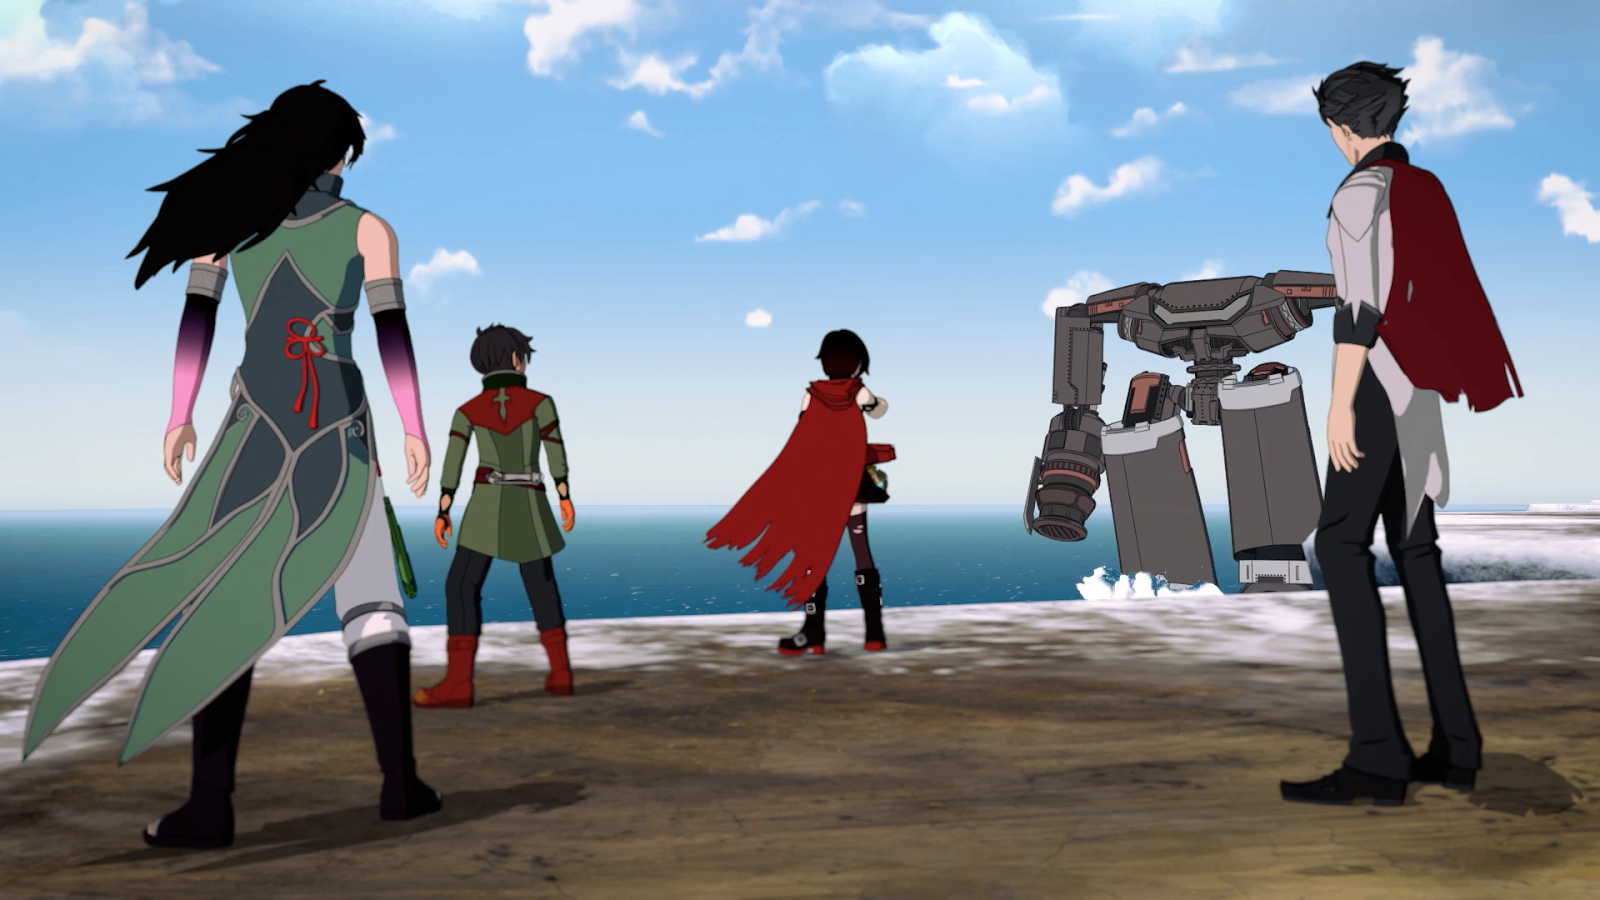 RWBY Volume 6 Episode 11 - The Lady in the Shoe: Review